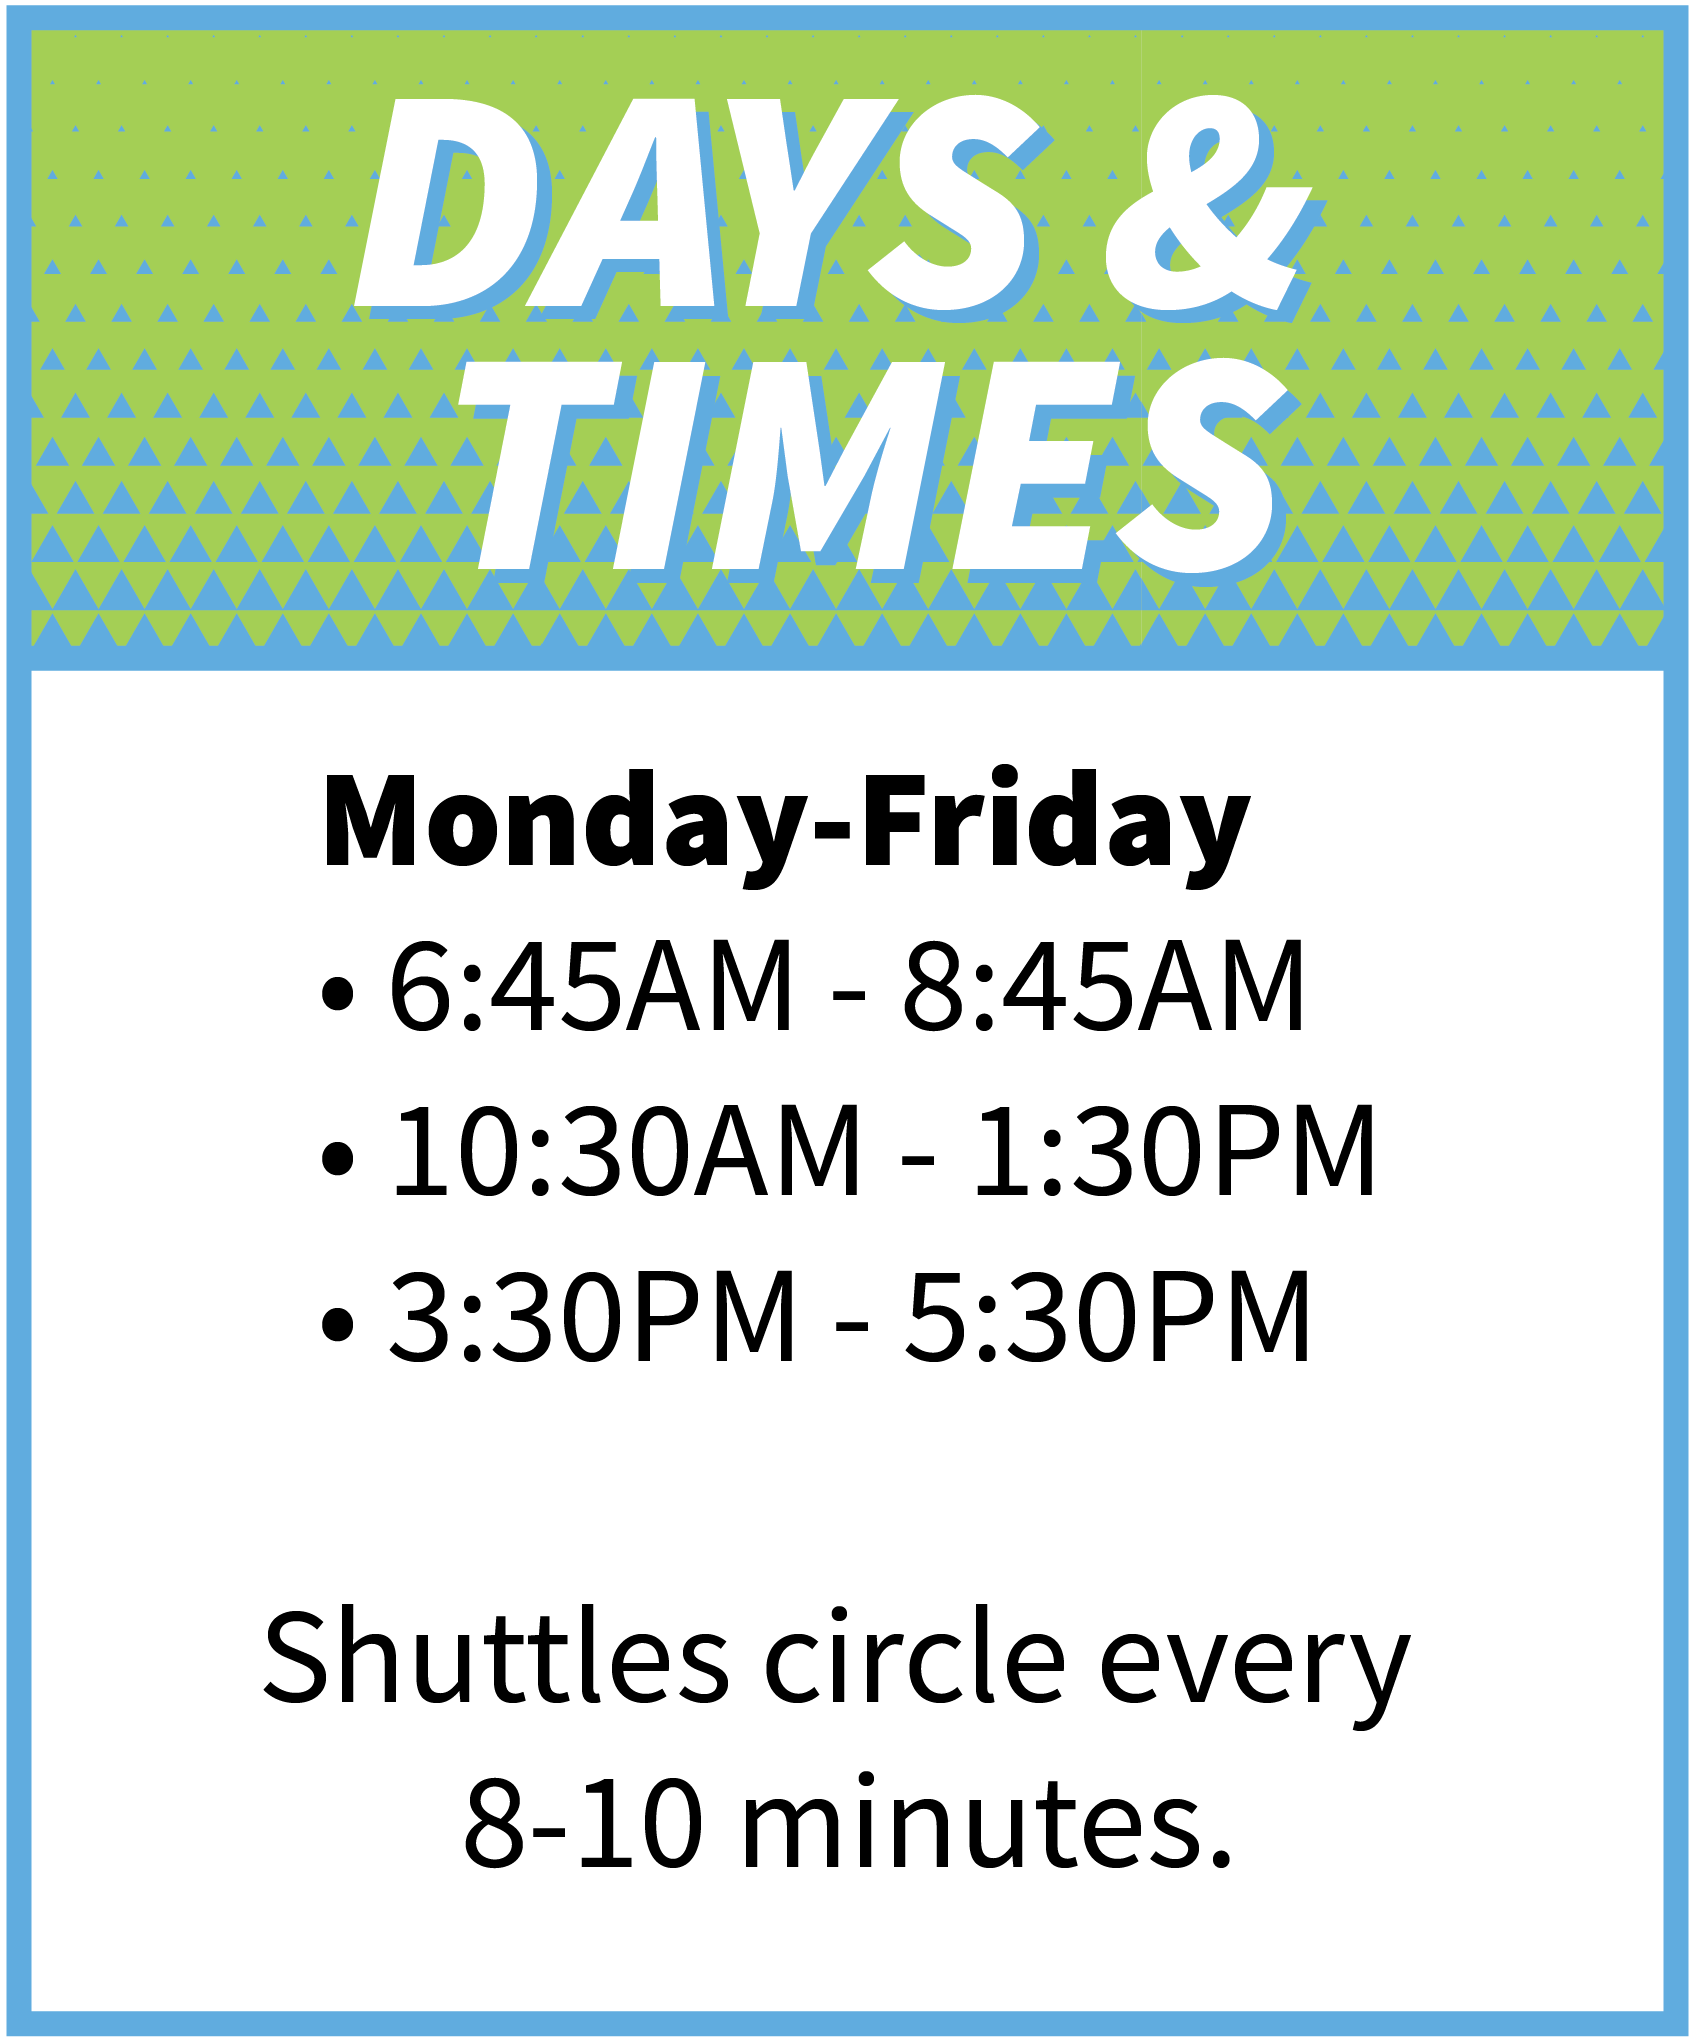 Days and times for shuttle routes